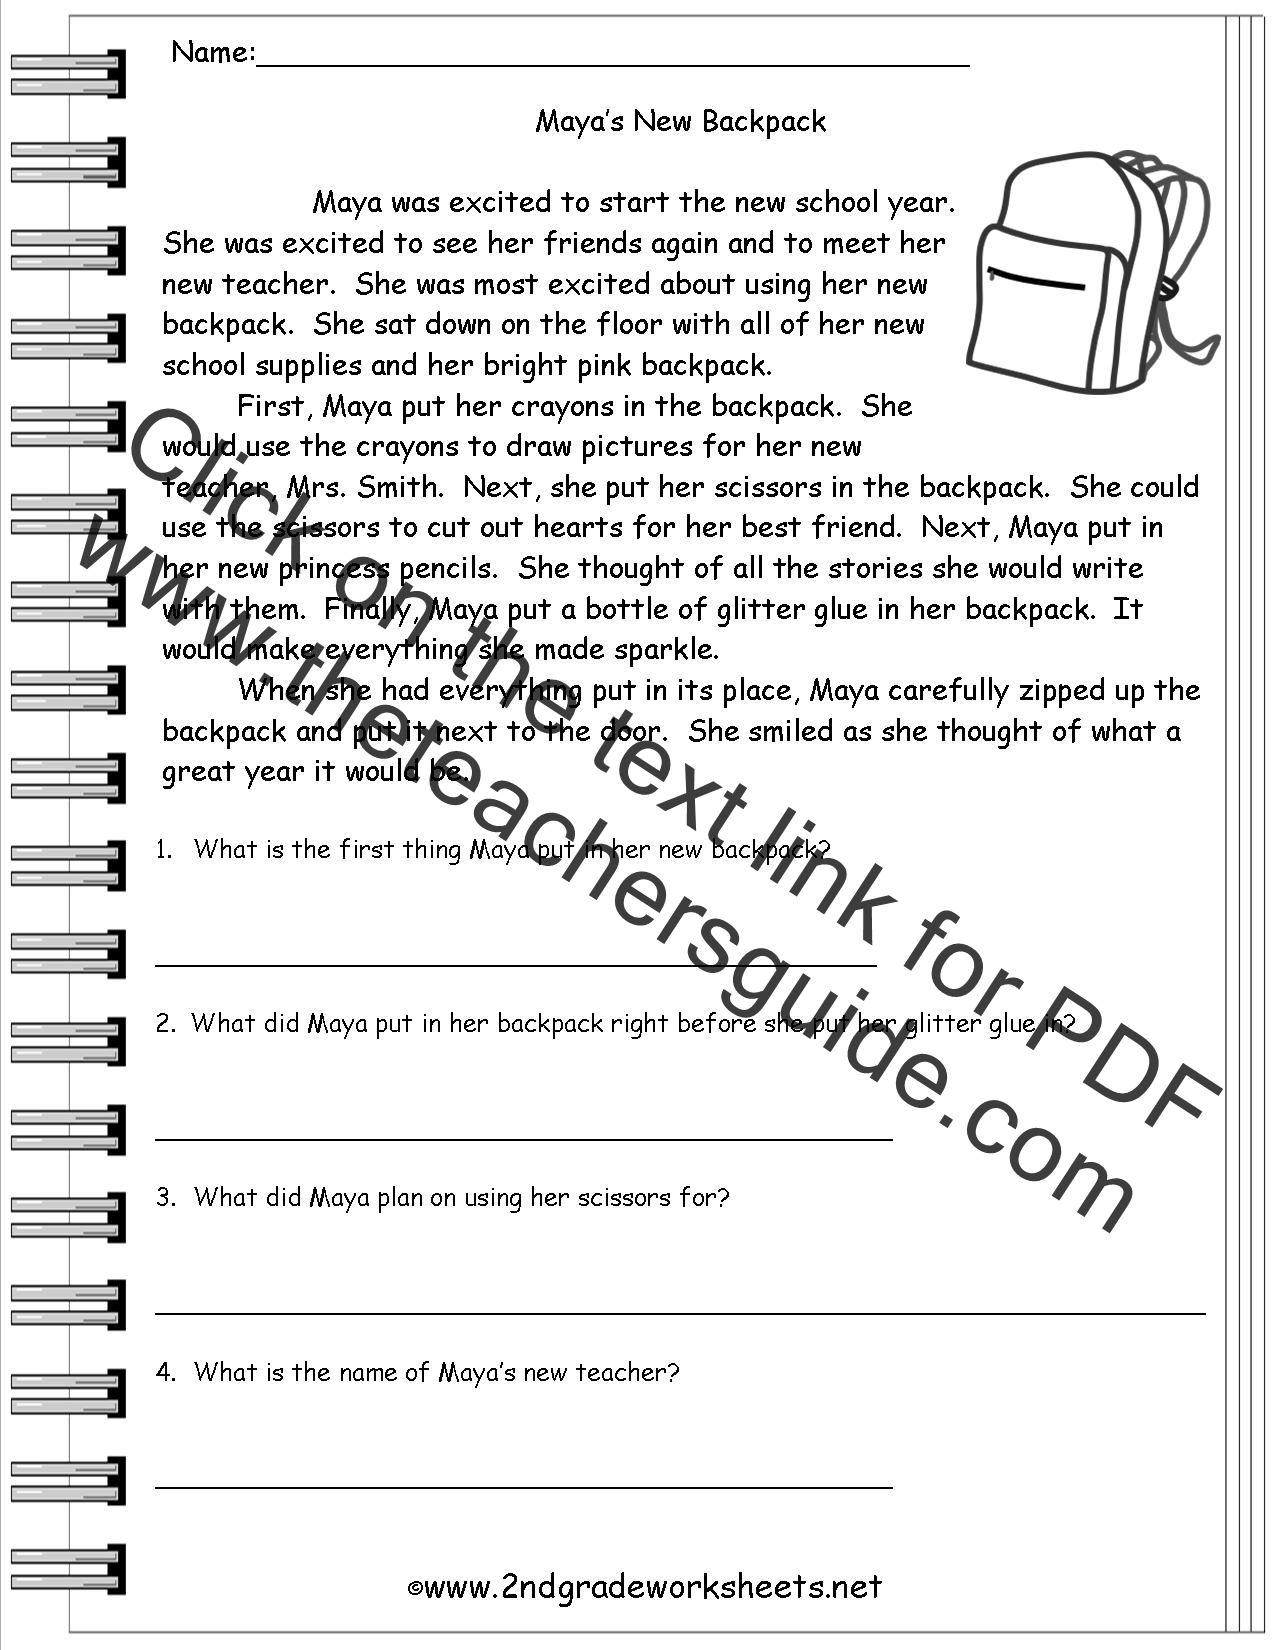 Worksheet Printable Reading Comprehension reading worksheeets literature worksheets